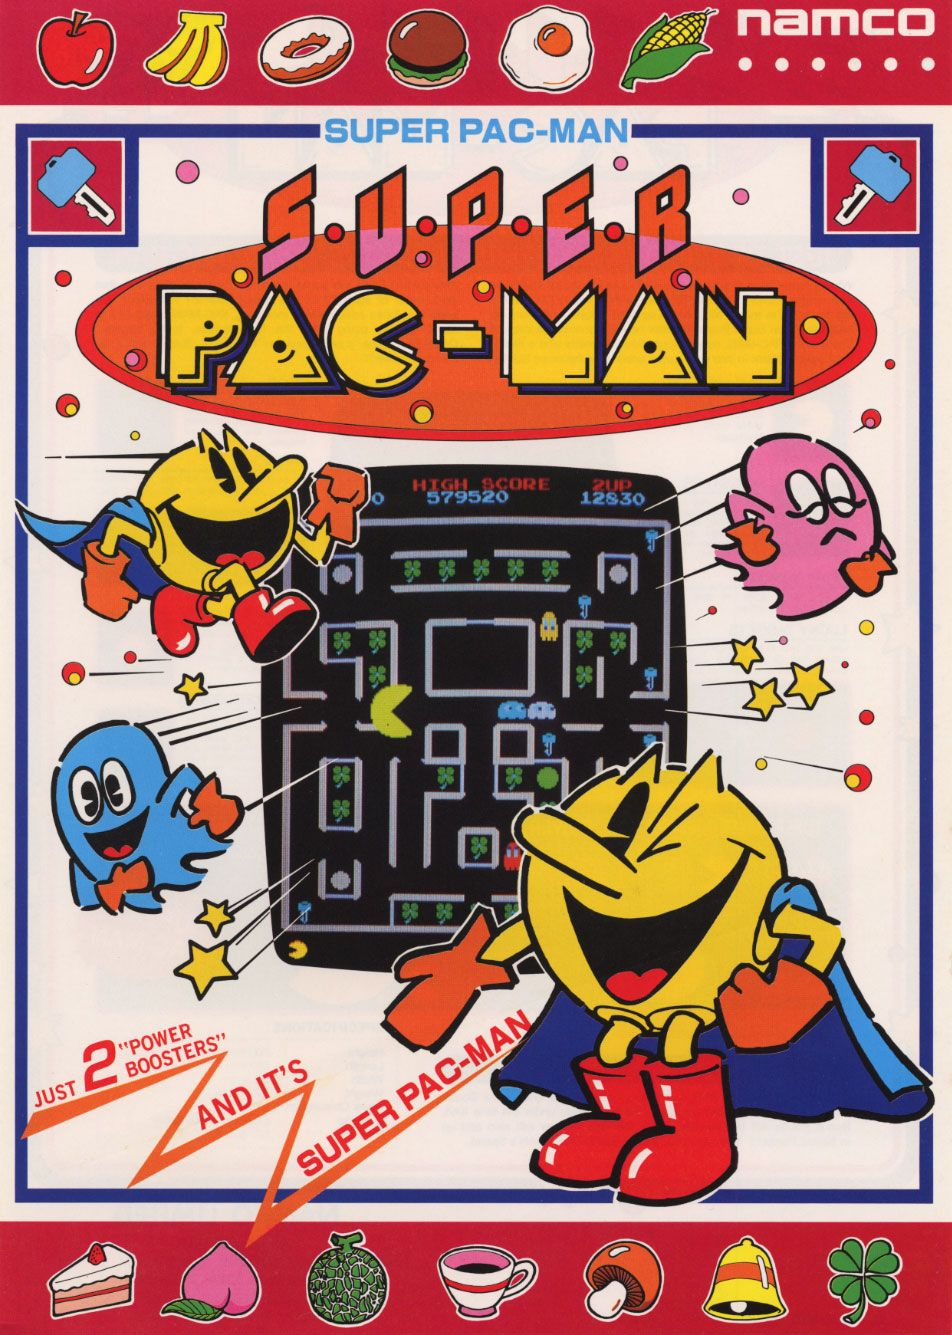 Old I Love Pac Man Video Game Midway Mfg Co Advertising Bumper Sticker UNUSED